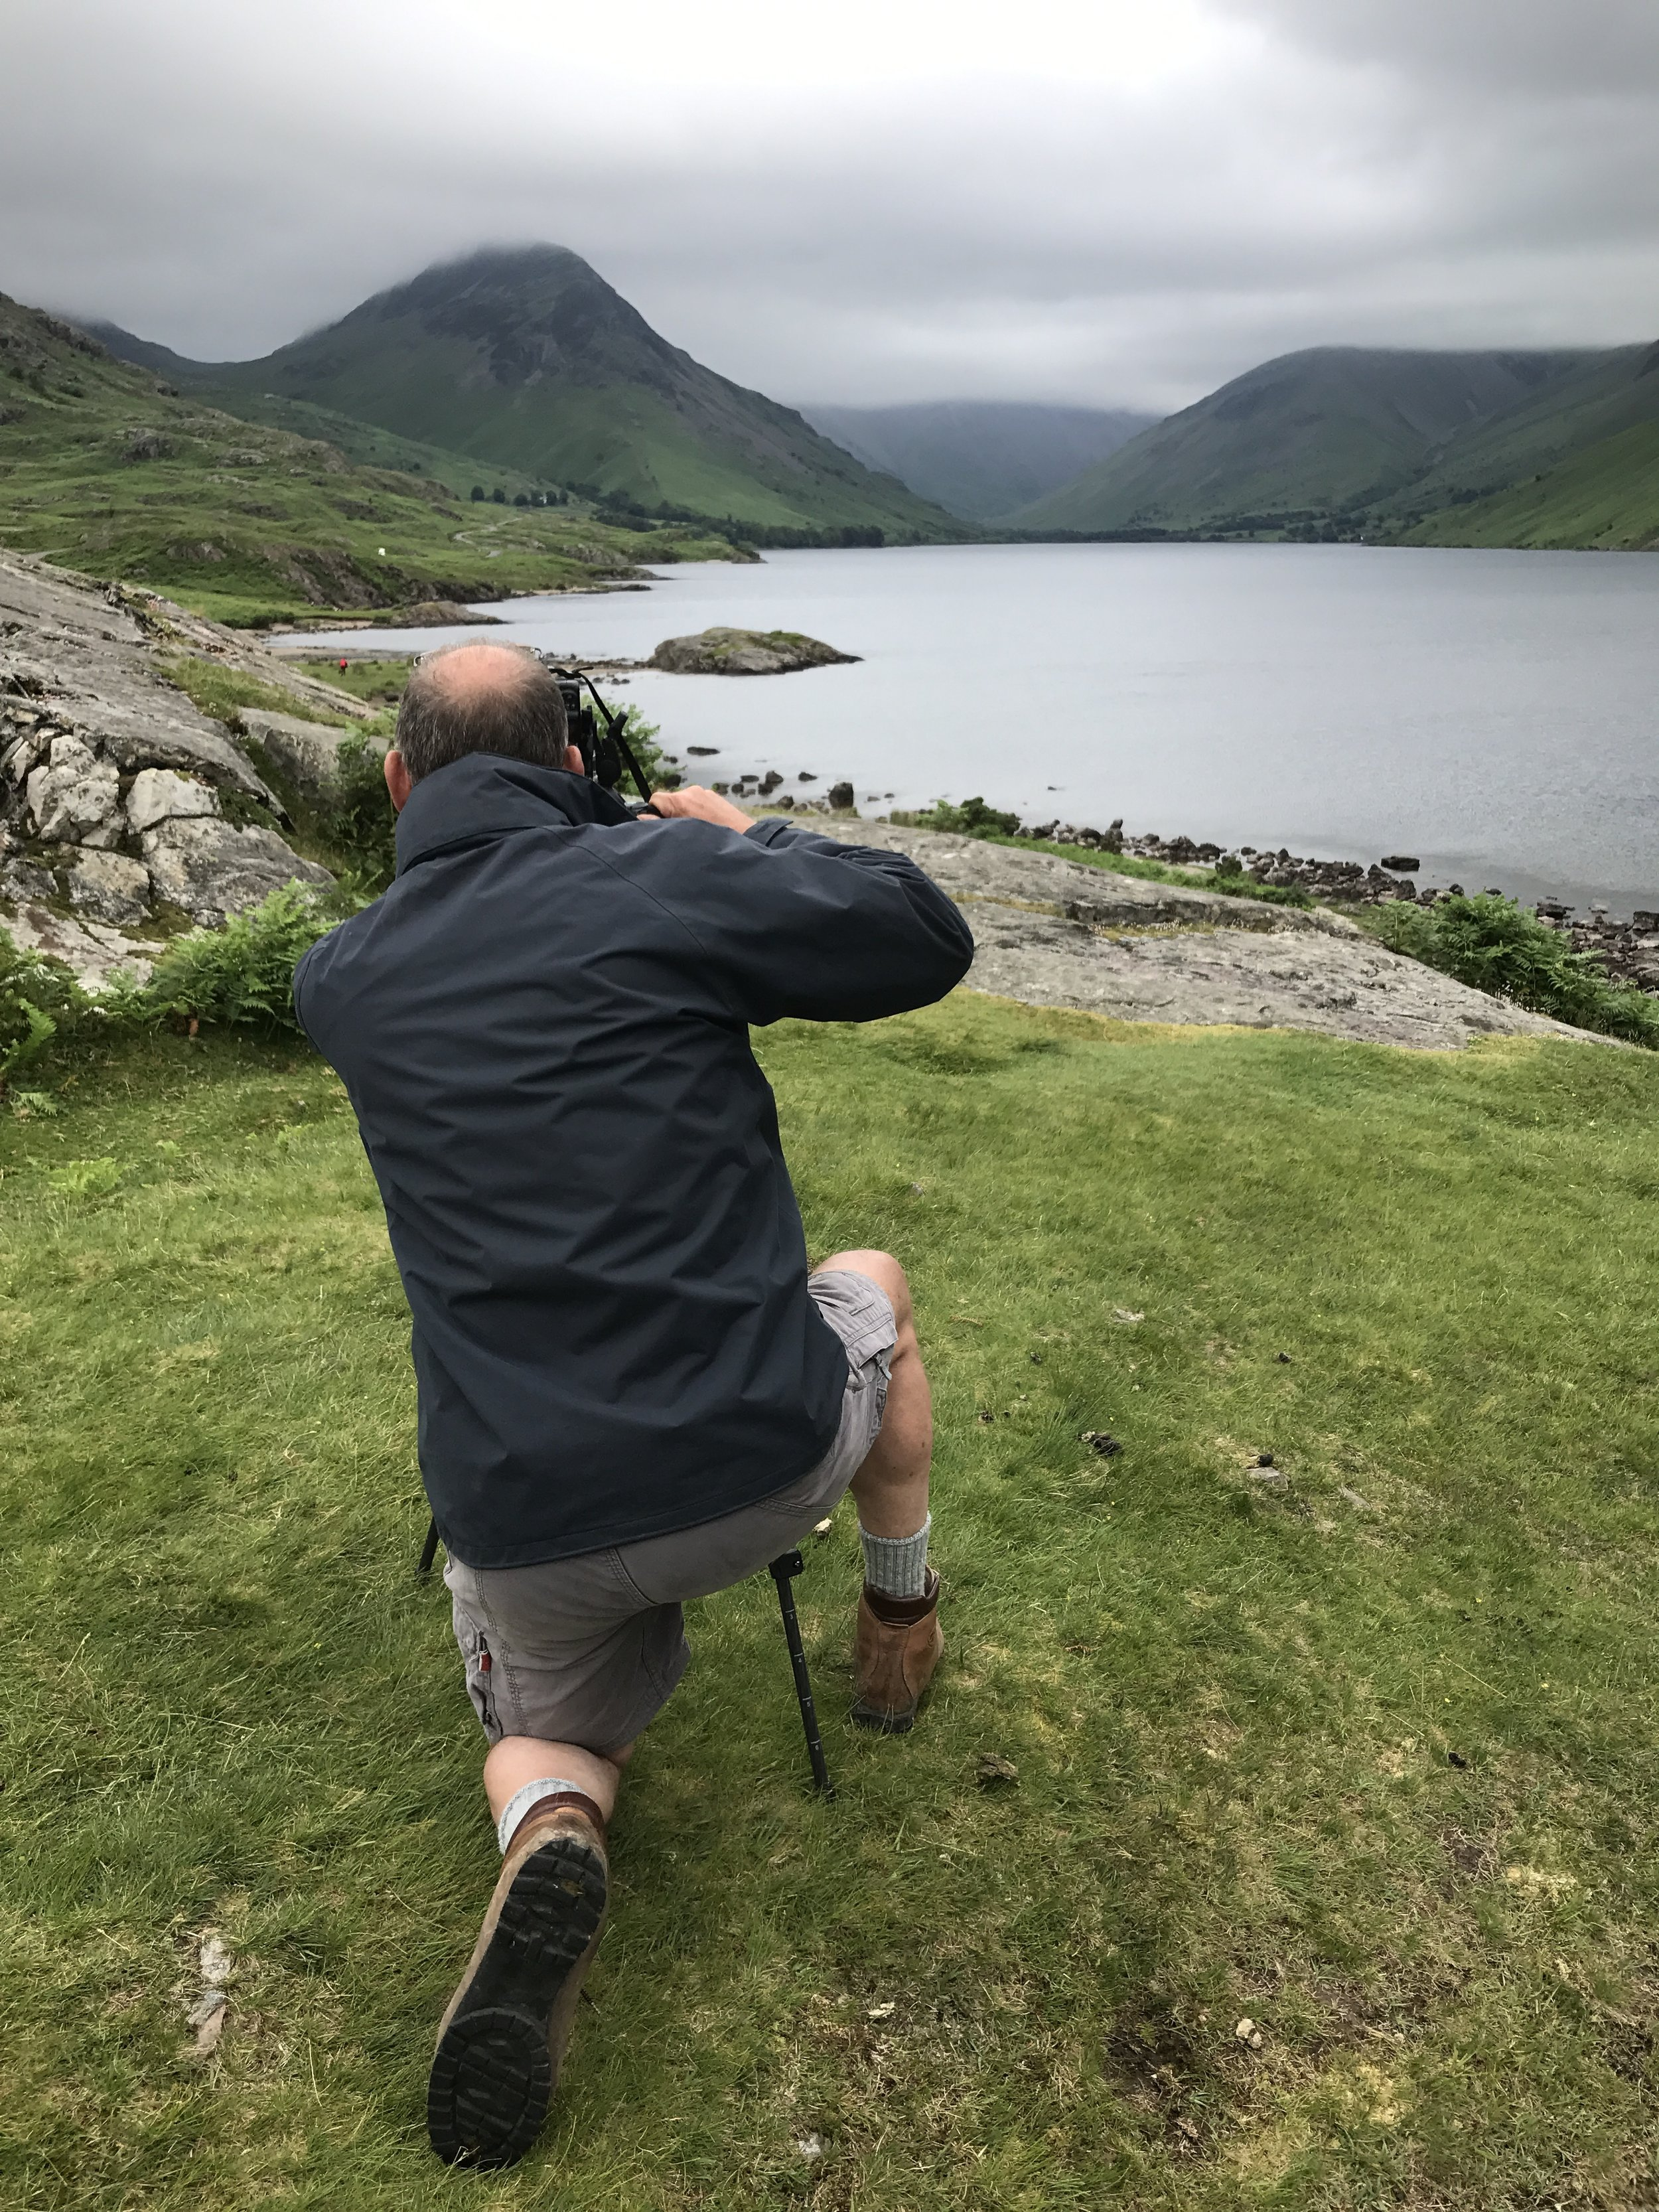 Another 'Mark' assimilating the scene and capturing Wast Water on a less than sunny day.